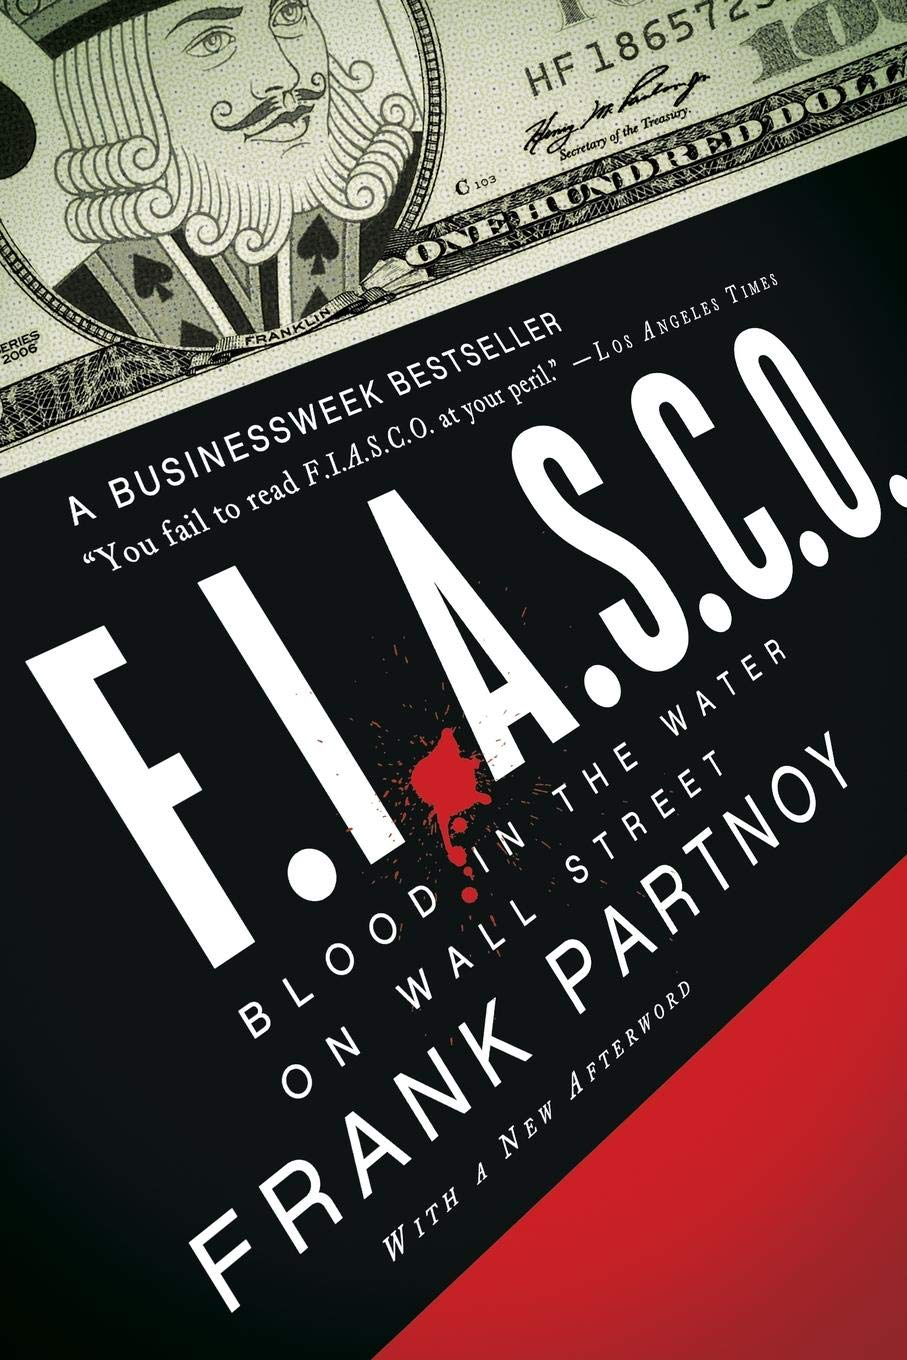 F.I.A.S.C.O.  Blood In The Water On Wall Street